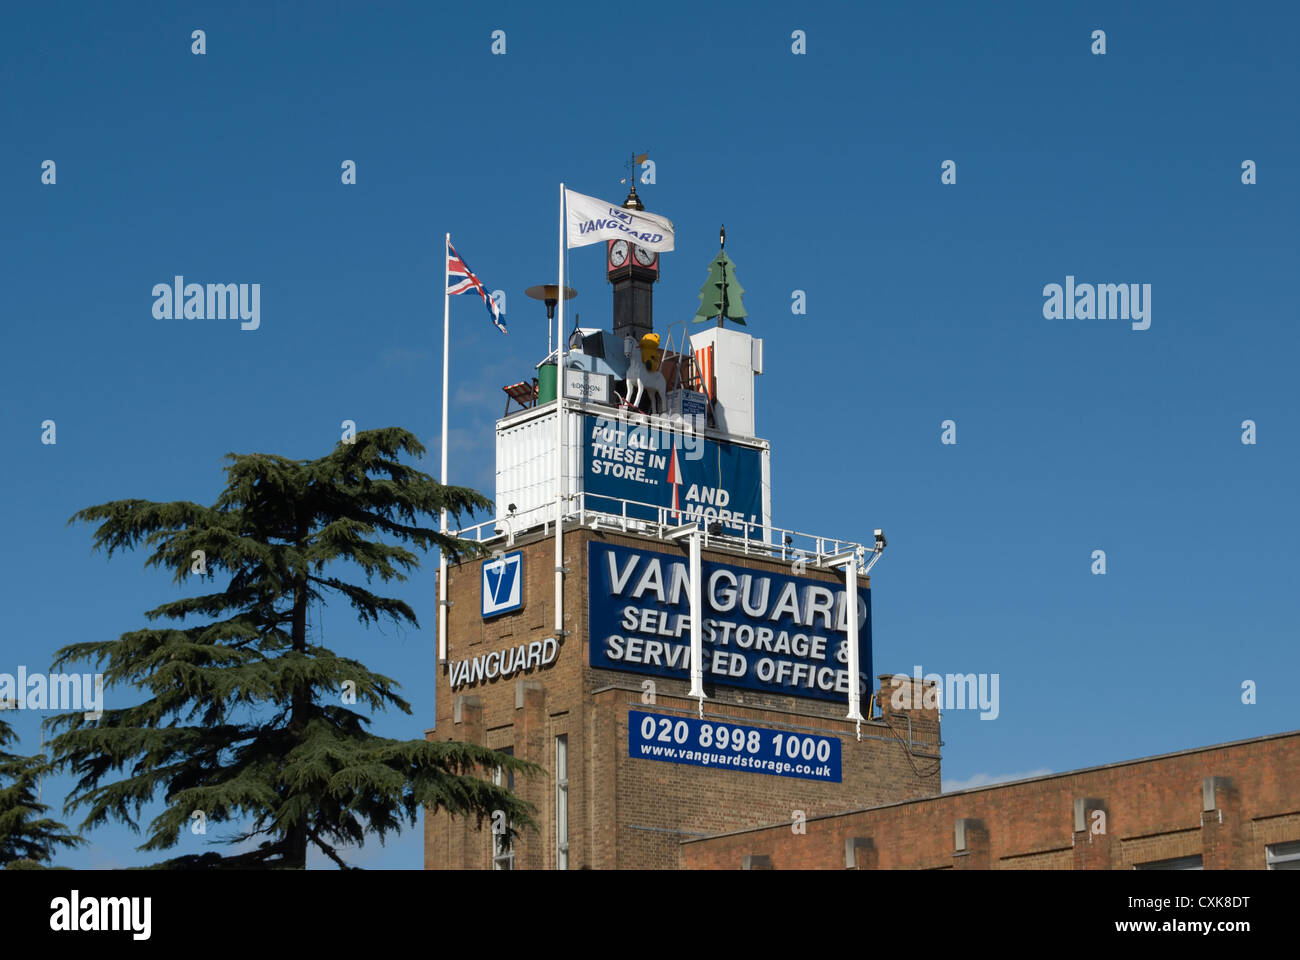 Stock Photo   Branch Of Vanguard Self Storage With Pseudo Household Items  Placed On Roof To Be Visible From Road, Perivale, London, England